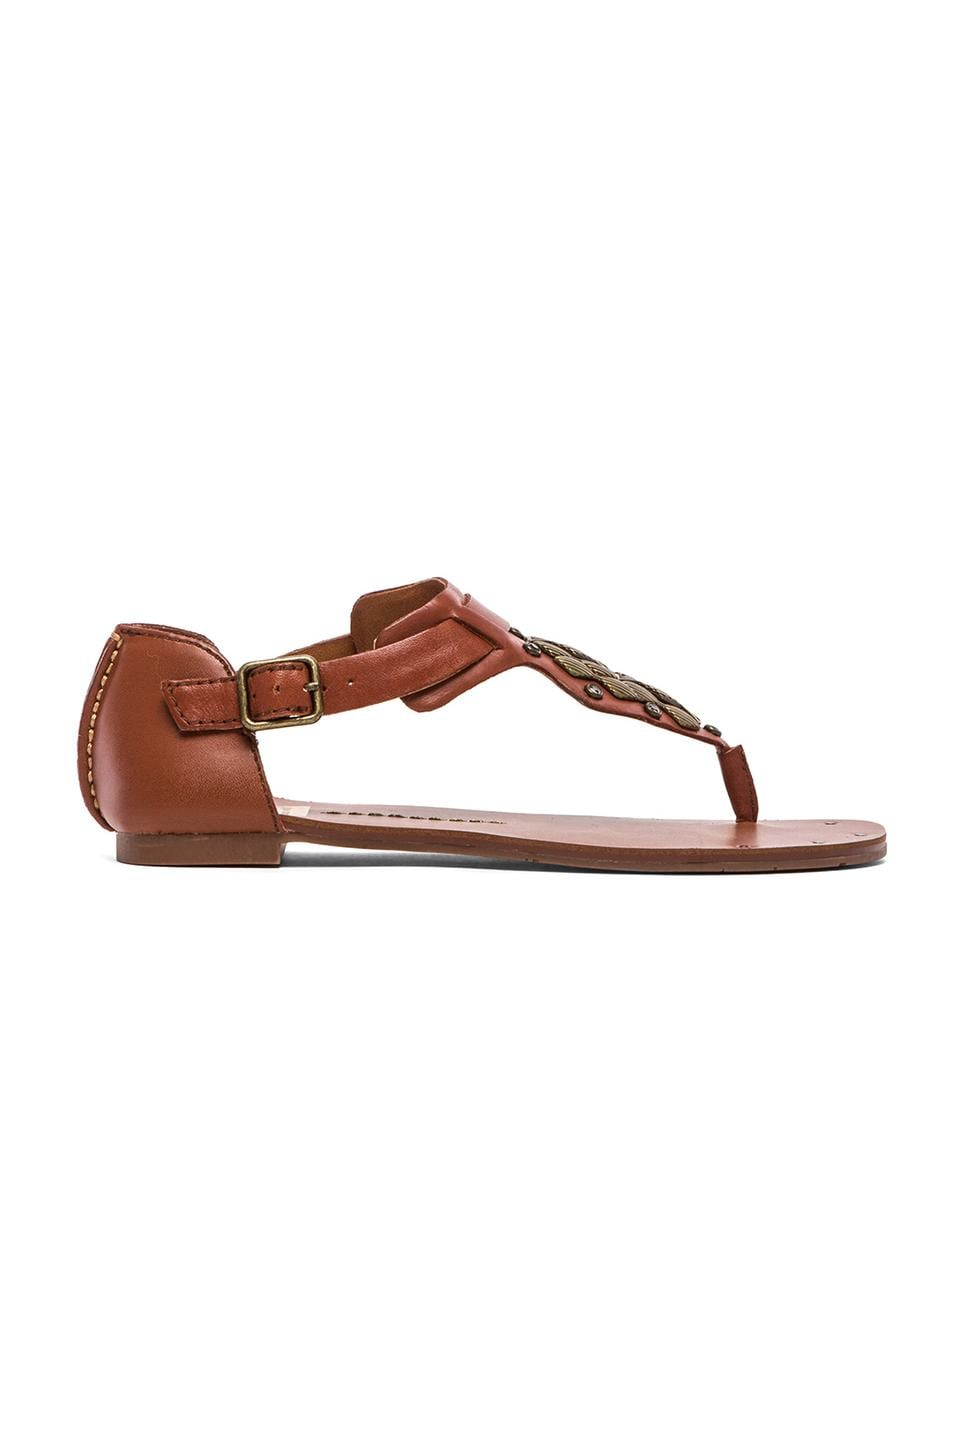 Dolce Vita Draya Sandal in Brown